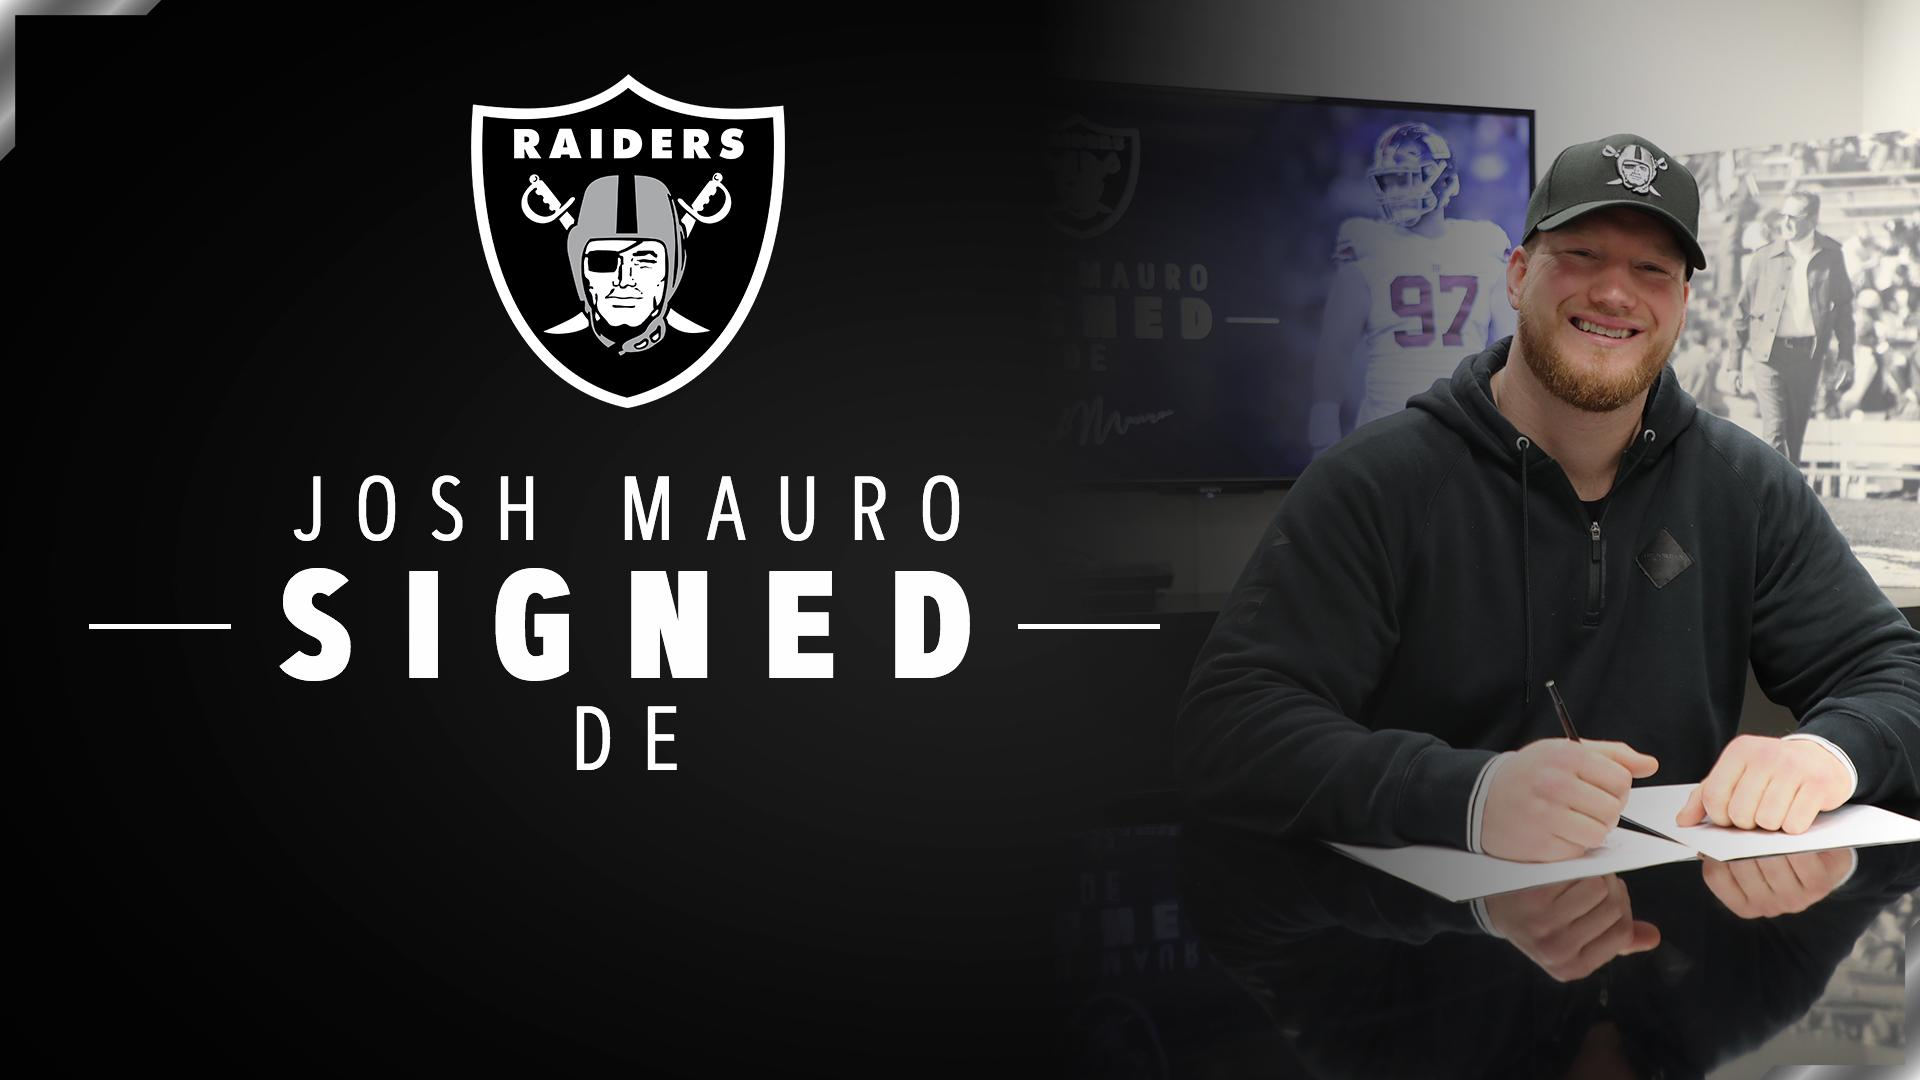 Another one. ��  We have signed DE Josh Mauro: https://t.co/mEjJb2SkwQ → @JustJoshin90 #RaiderNation https://t.co/9W3OaS4t6M